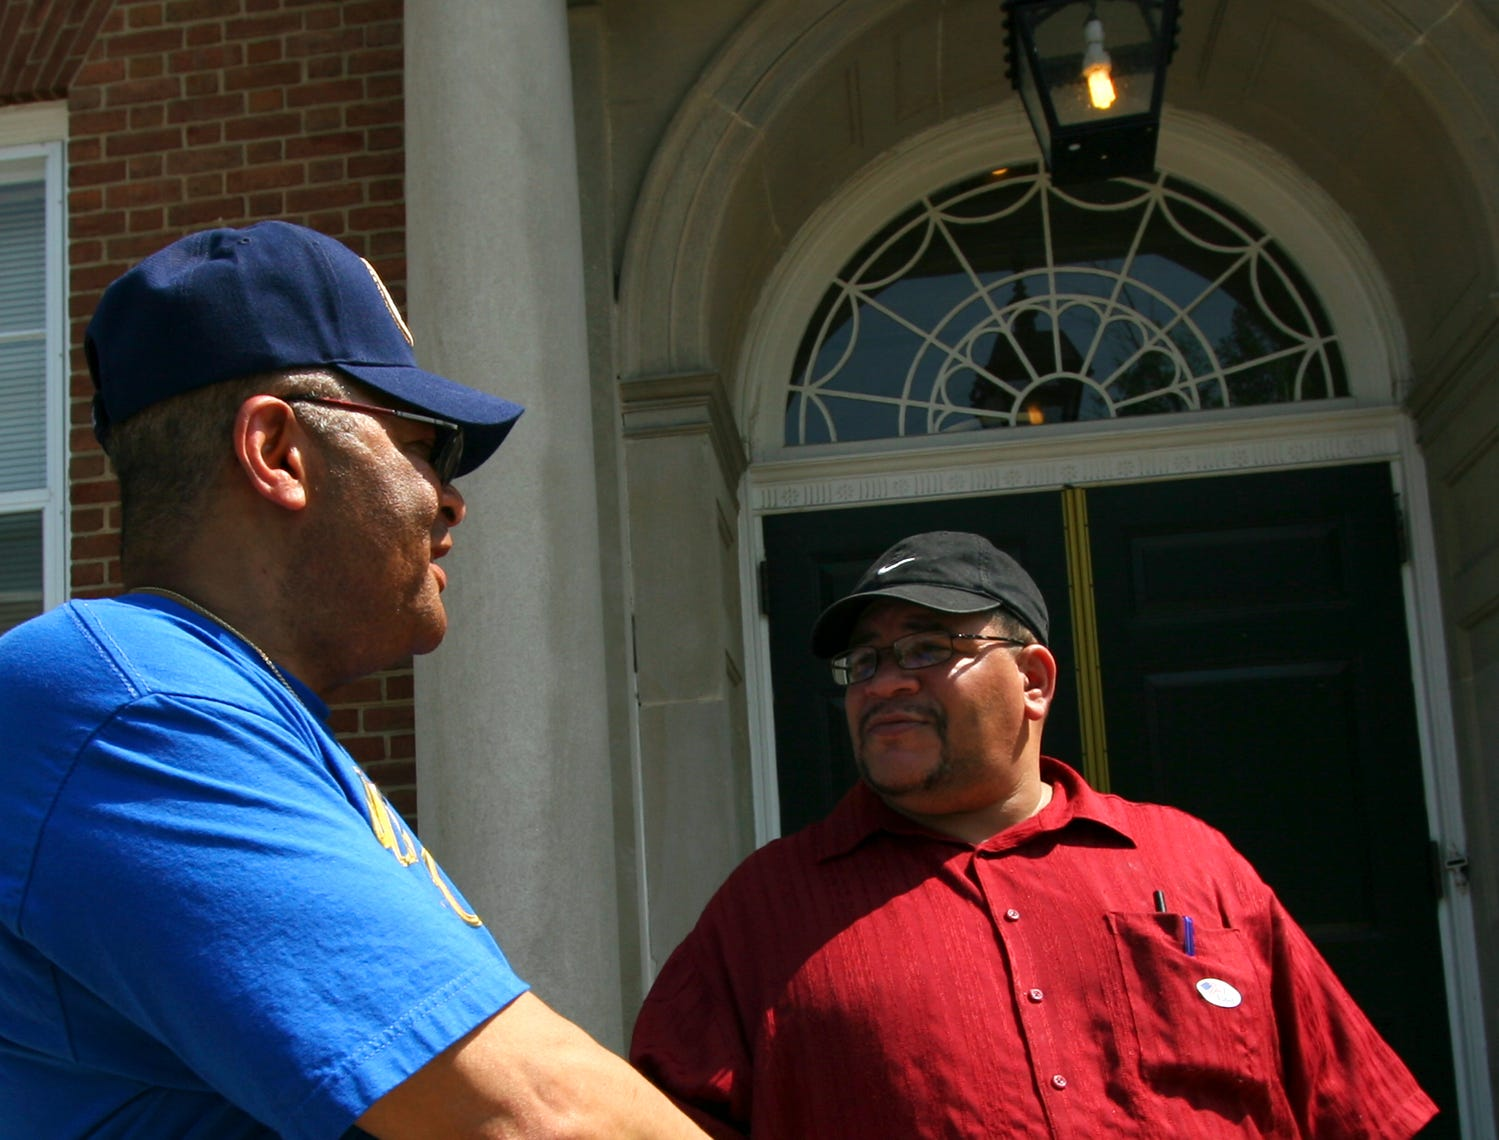 Twenty-six year City Council member, Lee Smallwood, greets York City Regional Coordinator for the Democratic party, Stephen Hawkins, outside the YWCA polling station in York City on Tuesday May 15, 2007.York Dispatch File